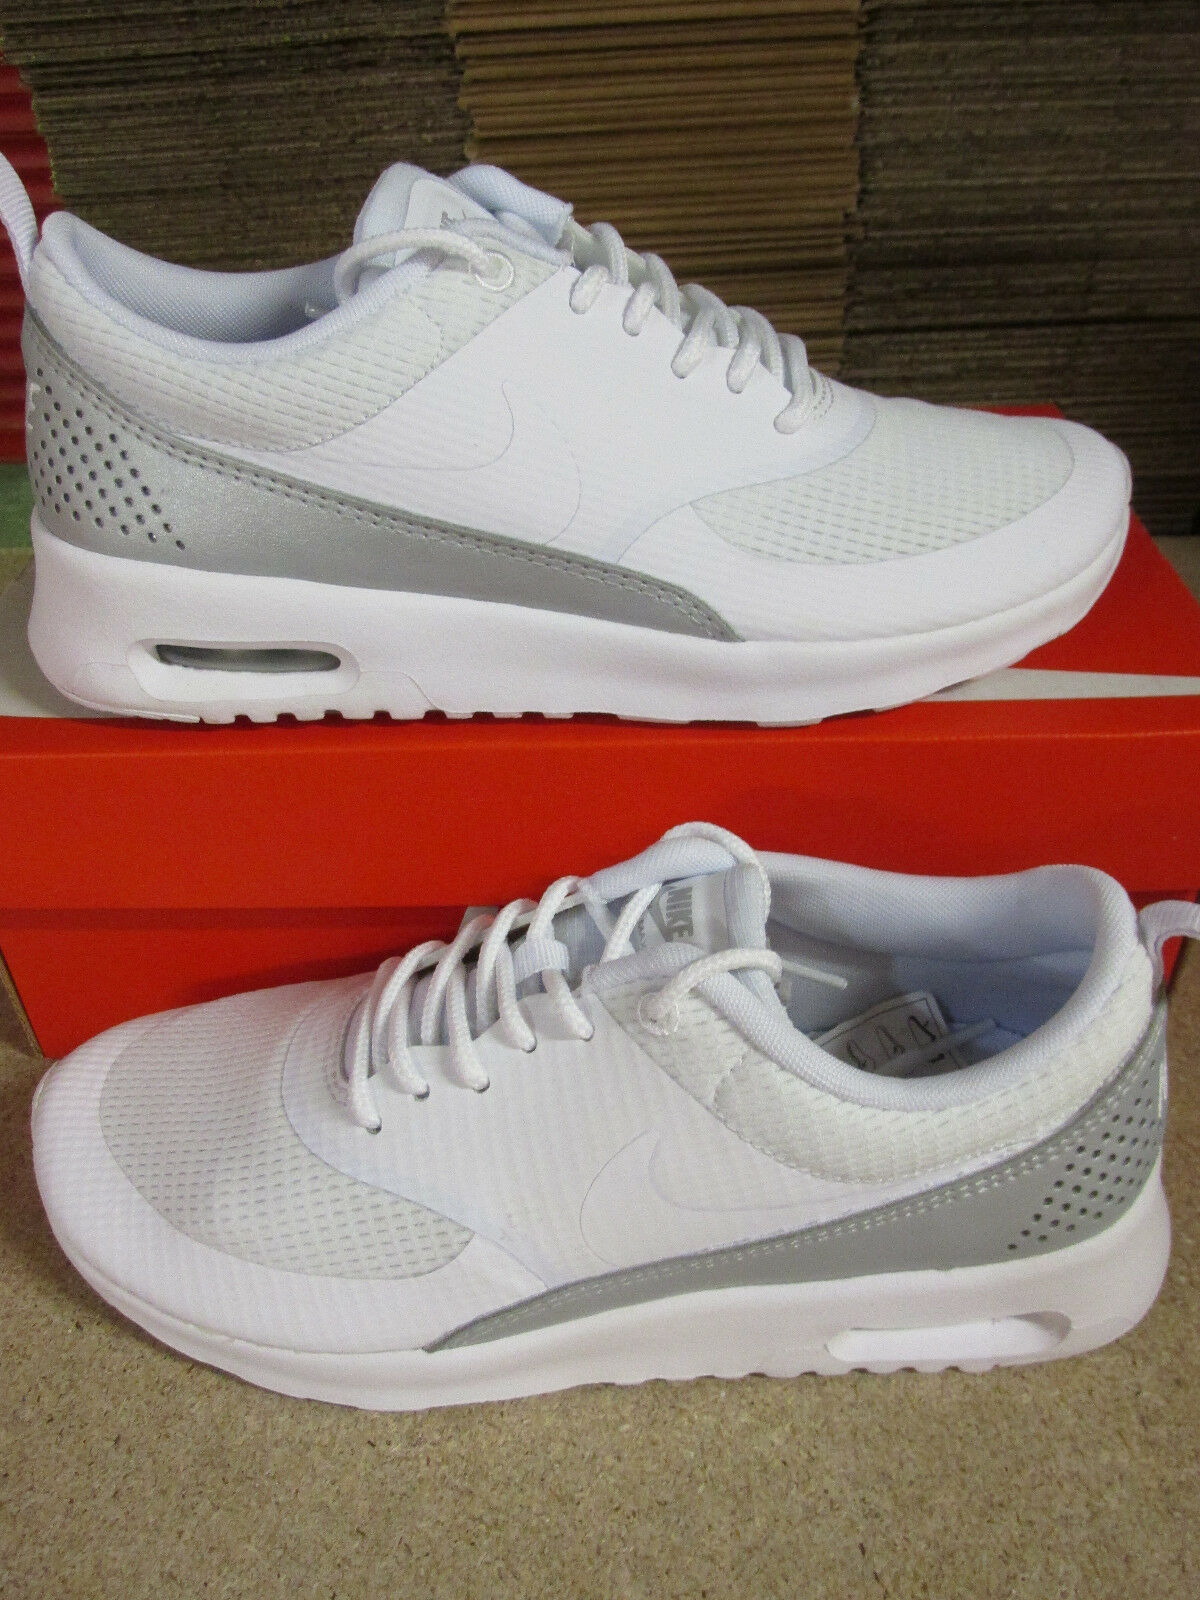 nike womens air max thea TXT trainers 819639 100 sneakers shoes